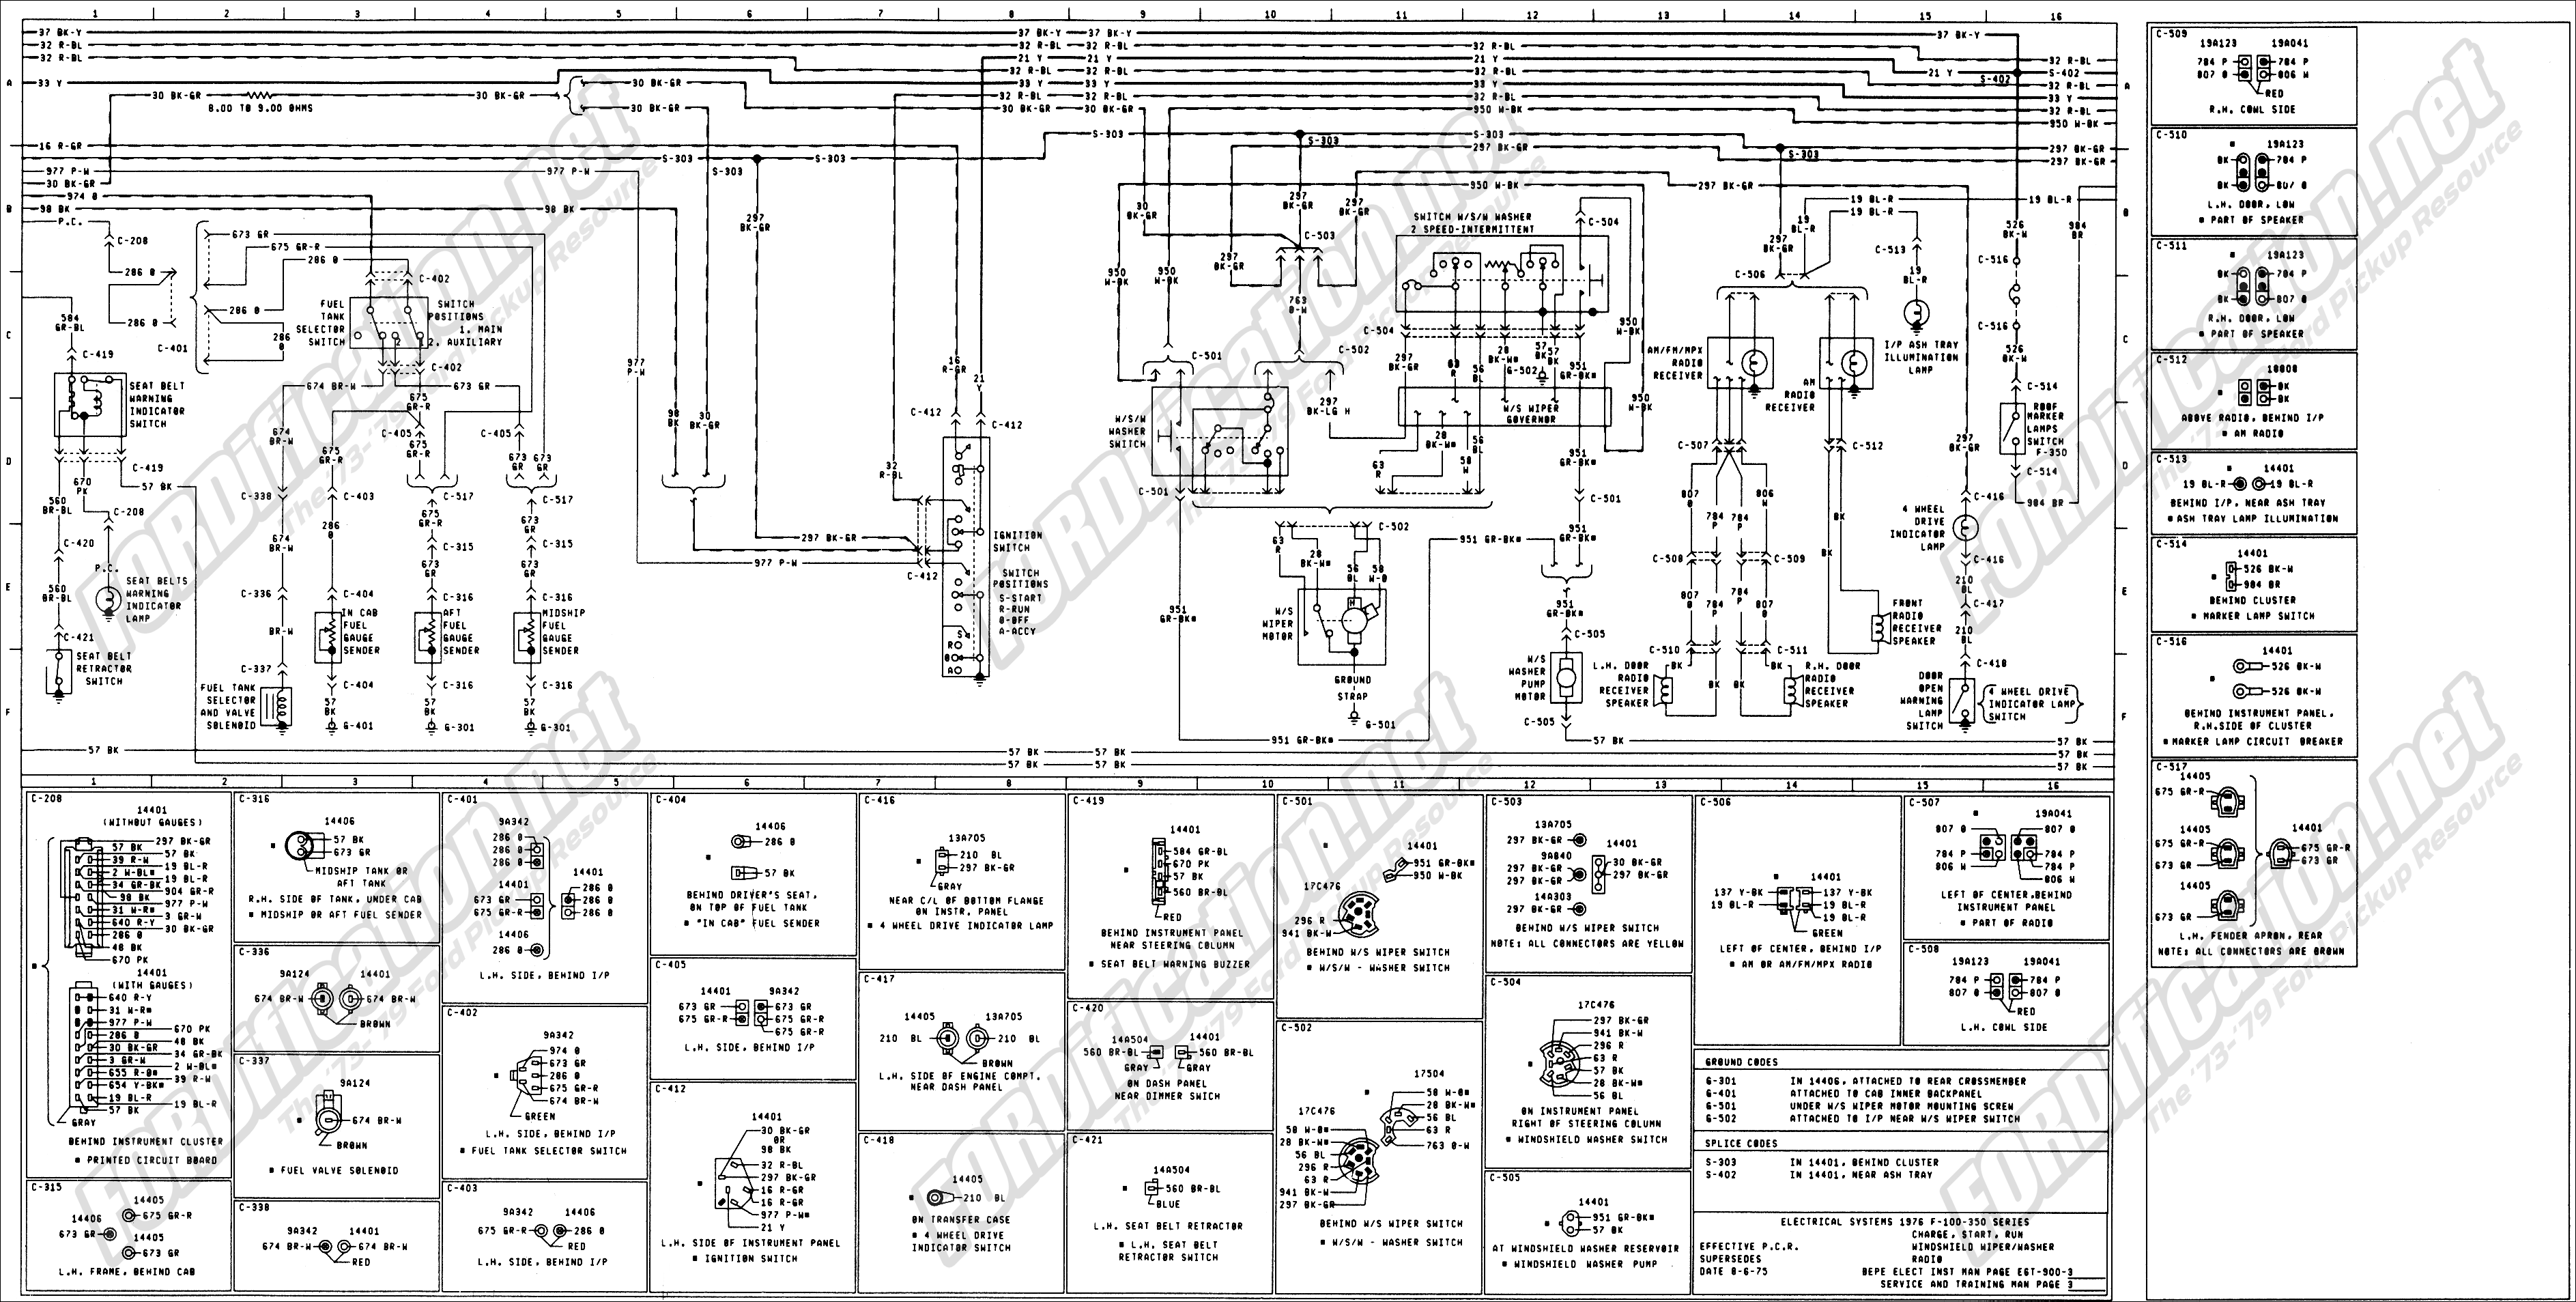 02 ranger a c wire diagram 1973 1979 ford truck wiring diagrams   schematics fordification net  1973 1979 ford truck wiring diagrams